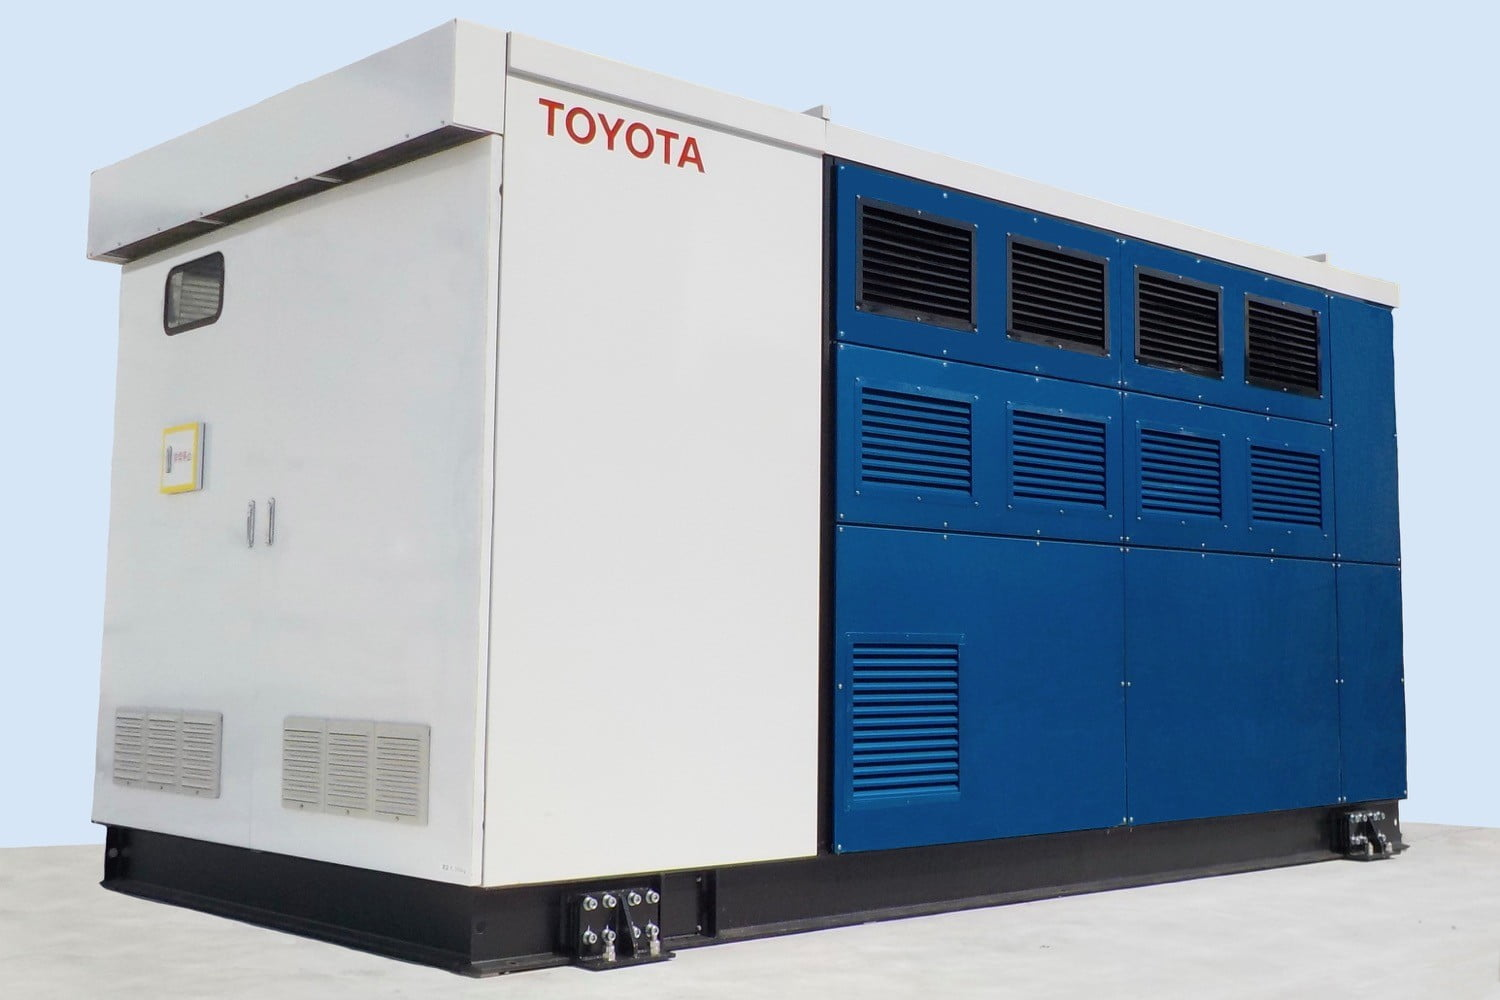 Toyota uses hydrogen fuel cells to power one of its Japanese factories